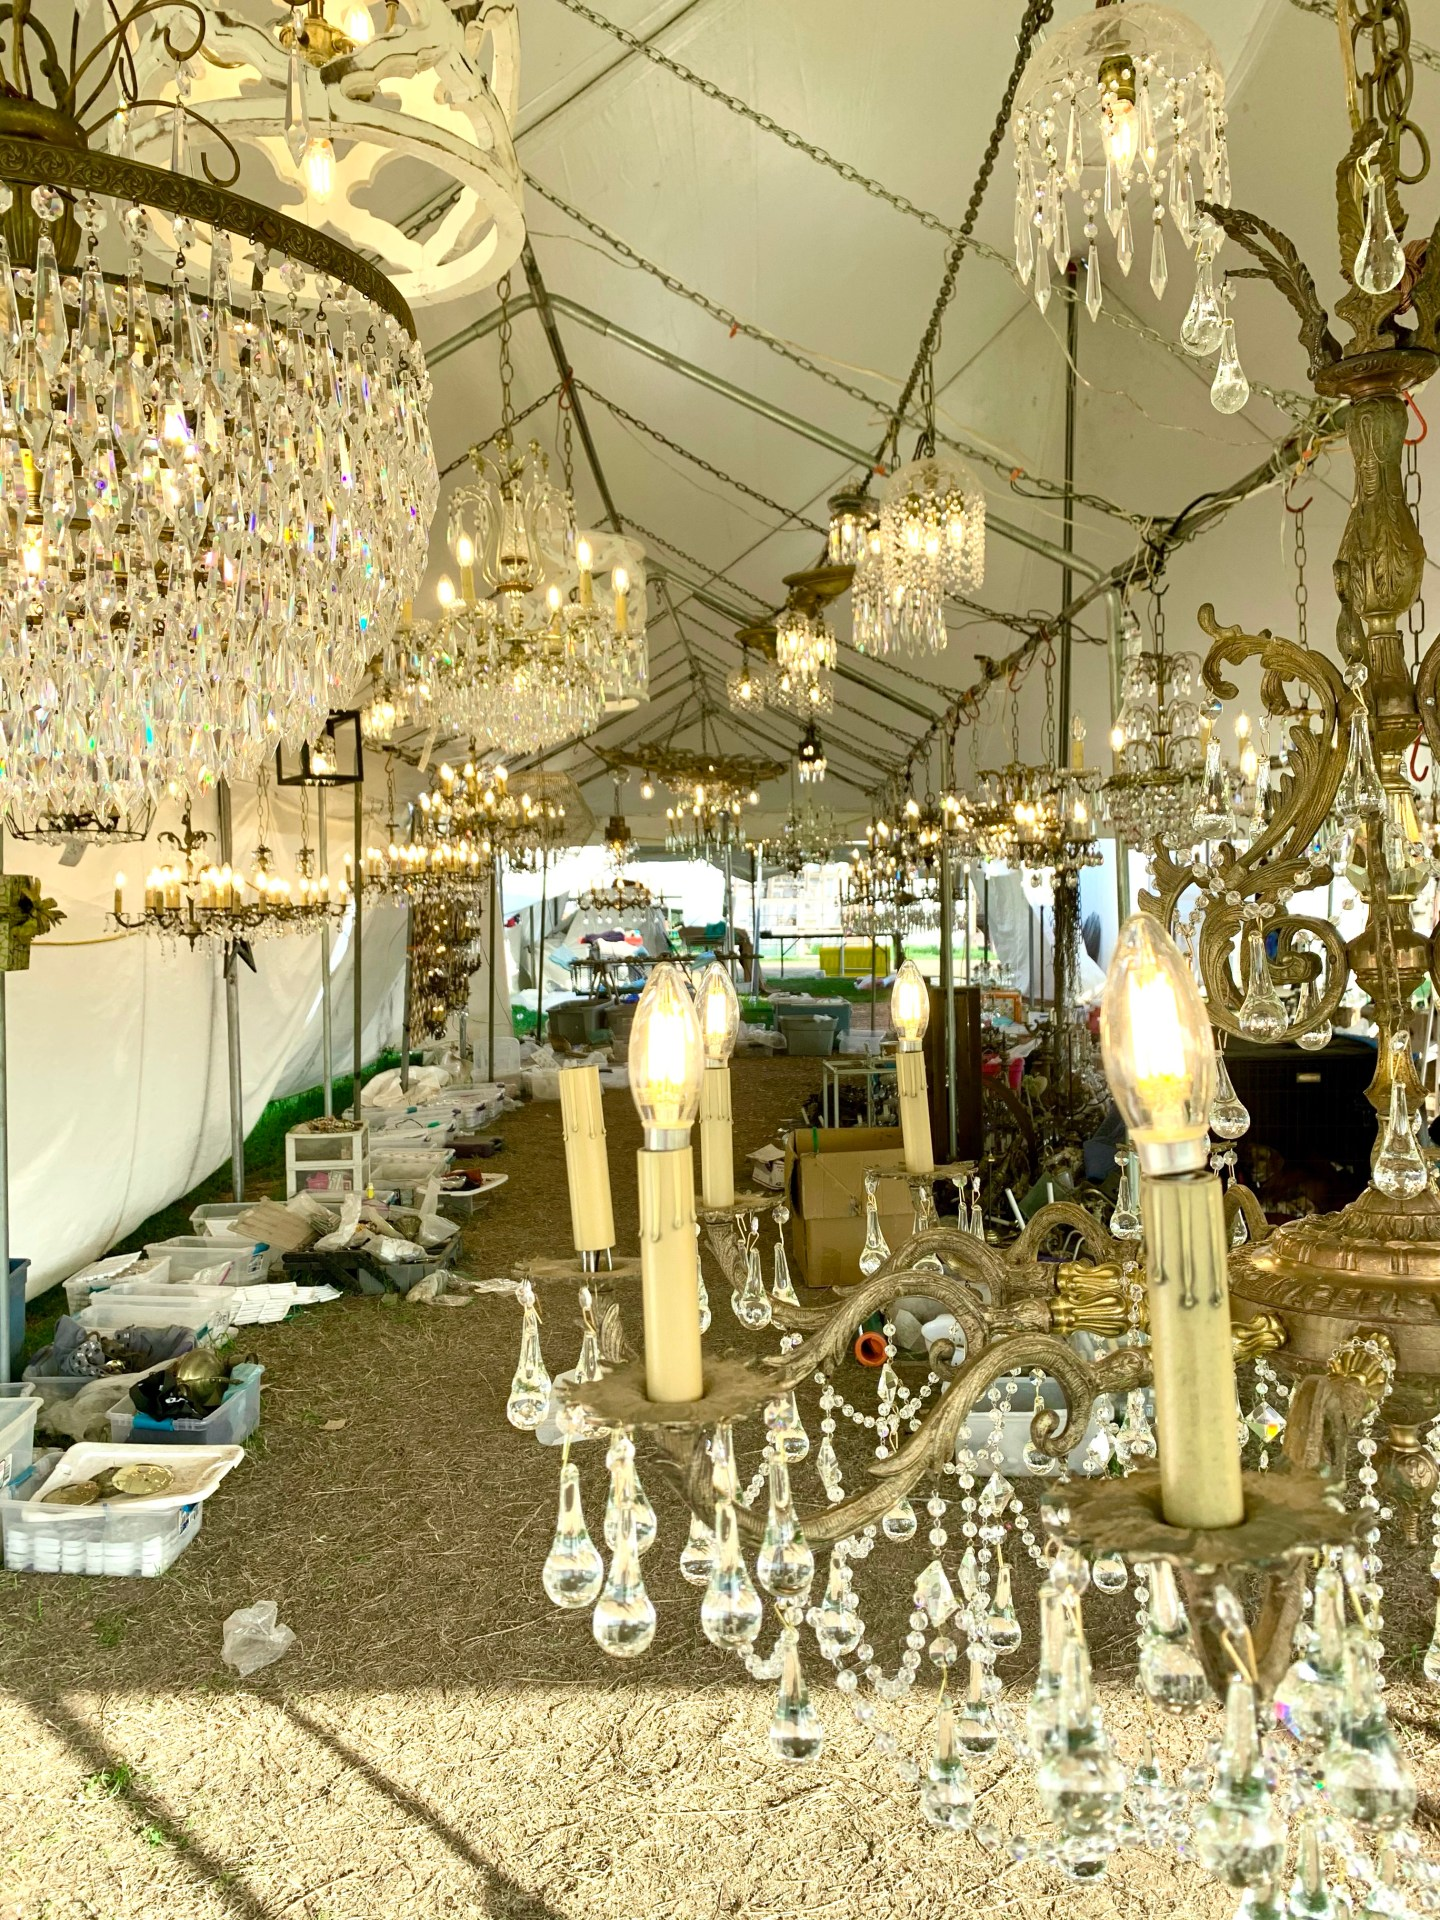 Handmade chandeliers for sale at the flea market.